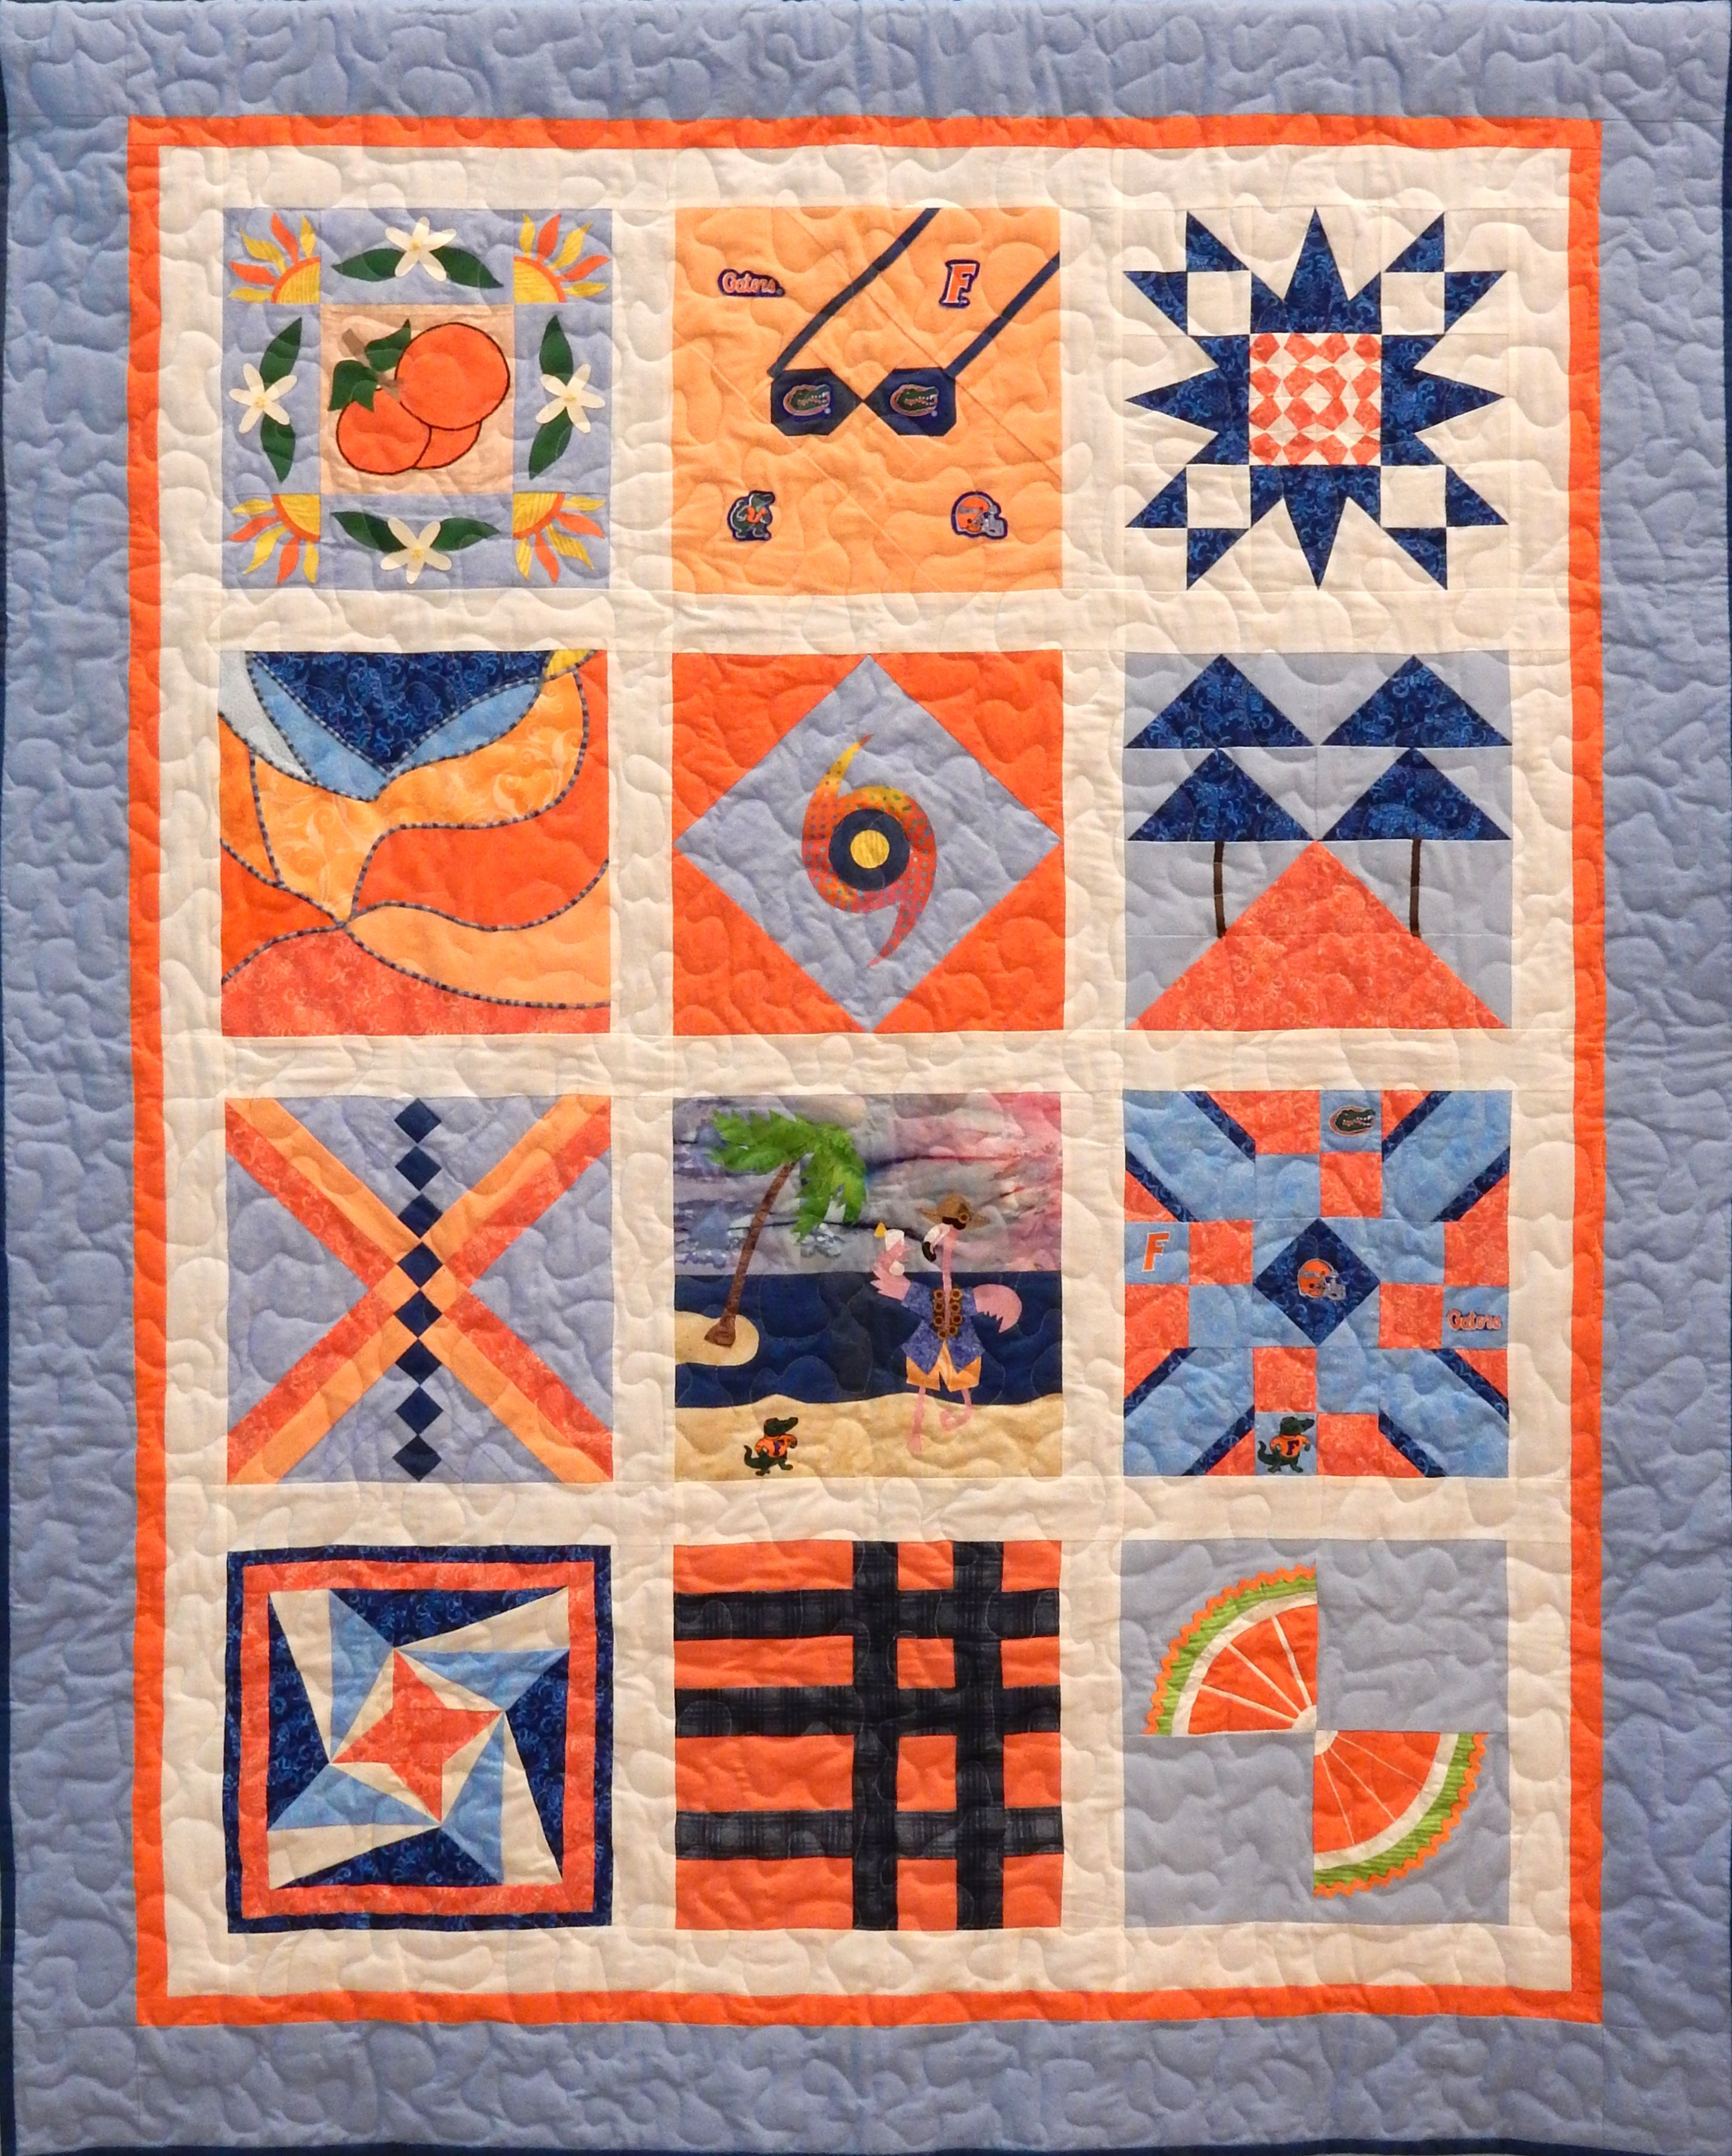 "Road to the Florida Swamp Lap Quilt 05 ""The Florida Swamp is located in Gainesville, Florida, and is home to the University of Florida Gators. Each block was designed by a member of Quilters Unlimited (See quilt label) in a 2013 Road to Florida challenge. I decided to make the blocks in my alma mater's colors, orange and blue."""